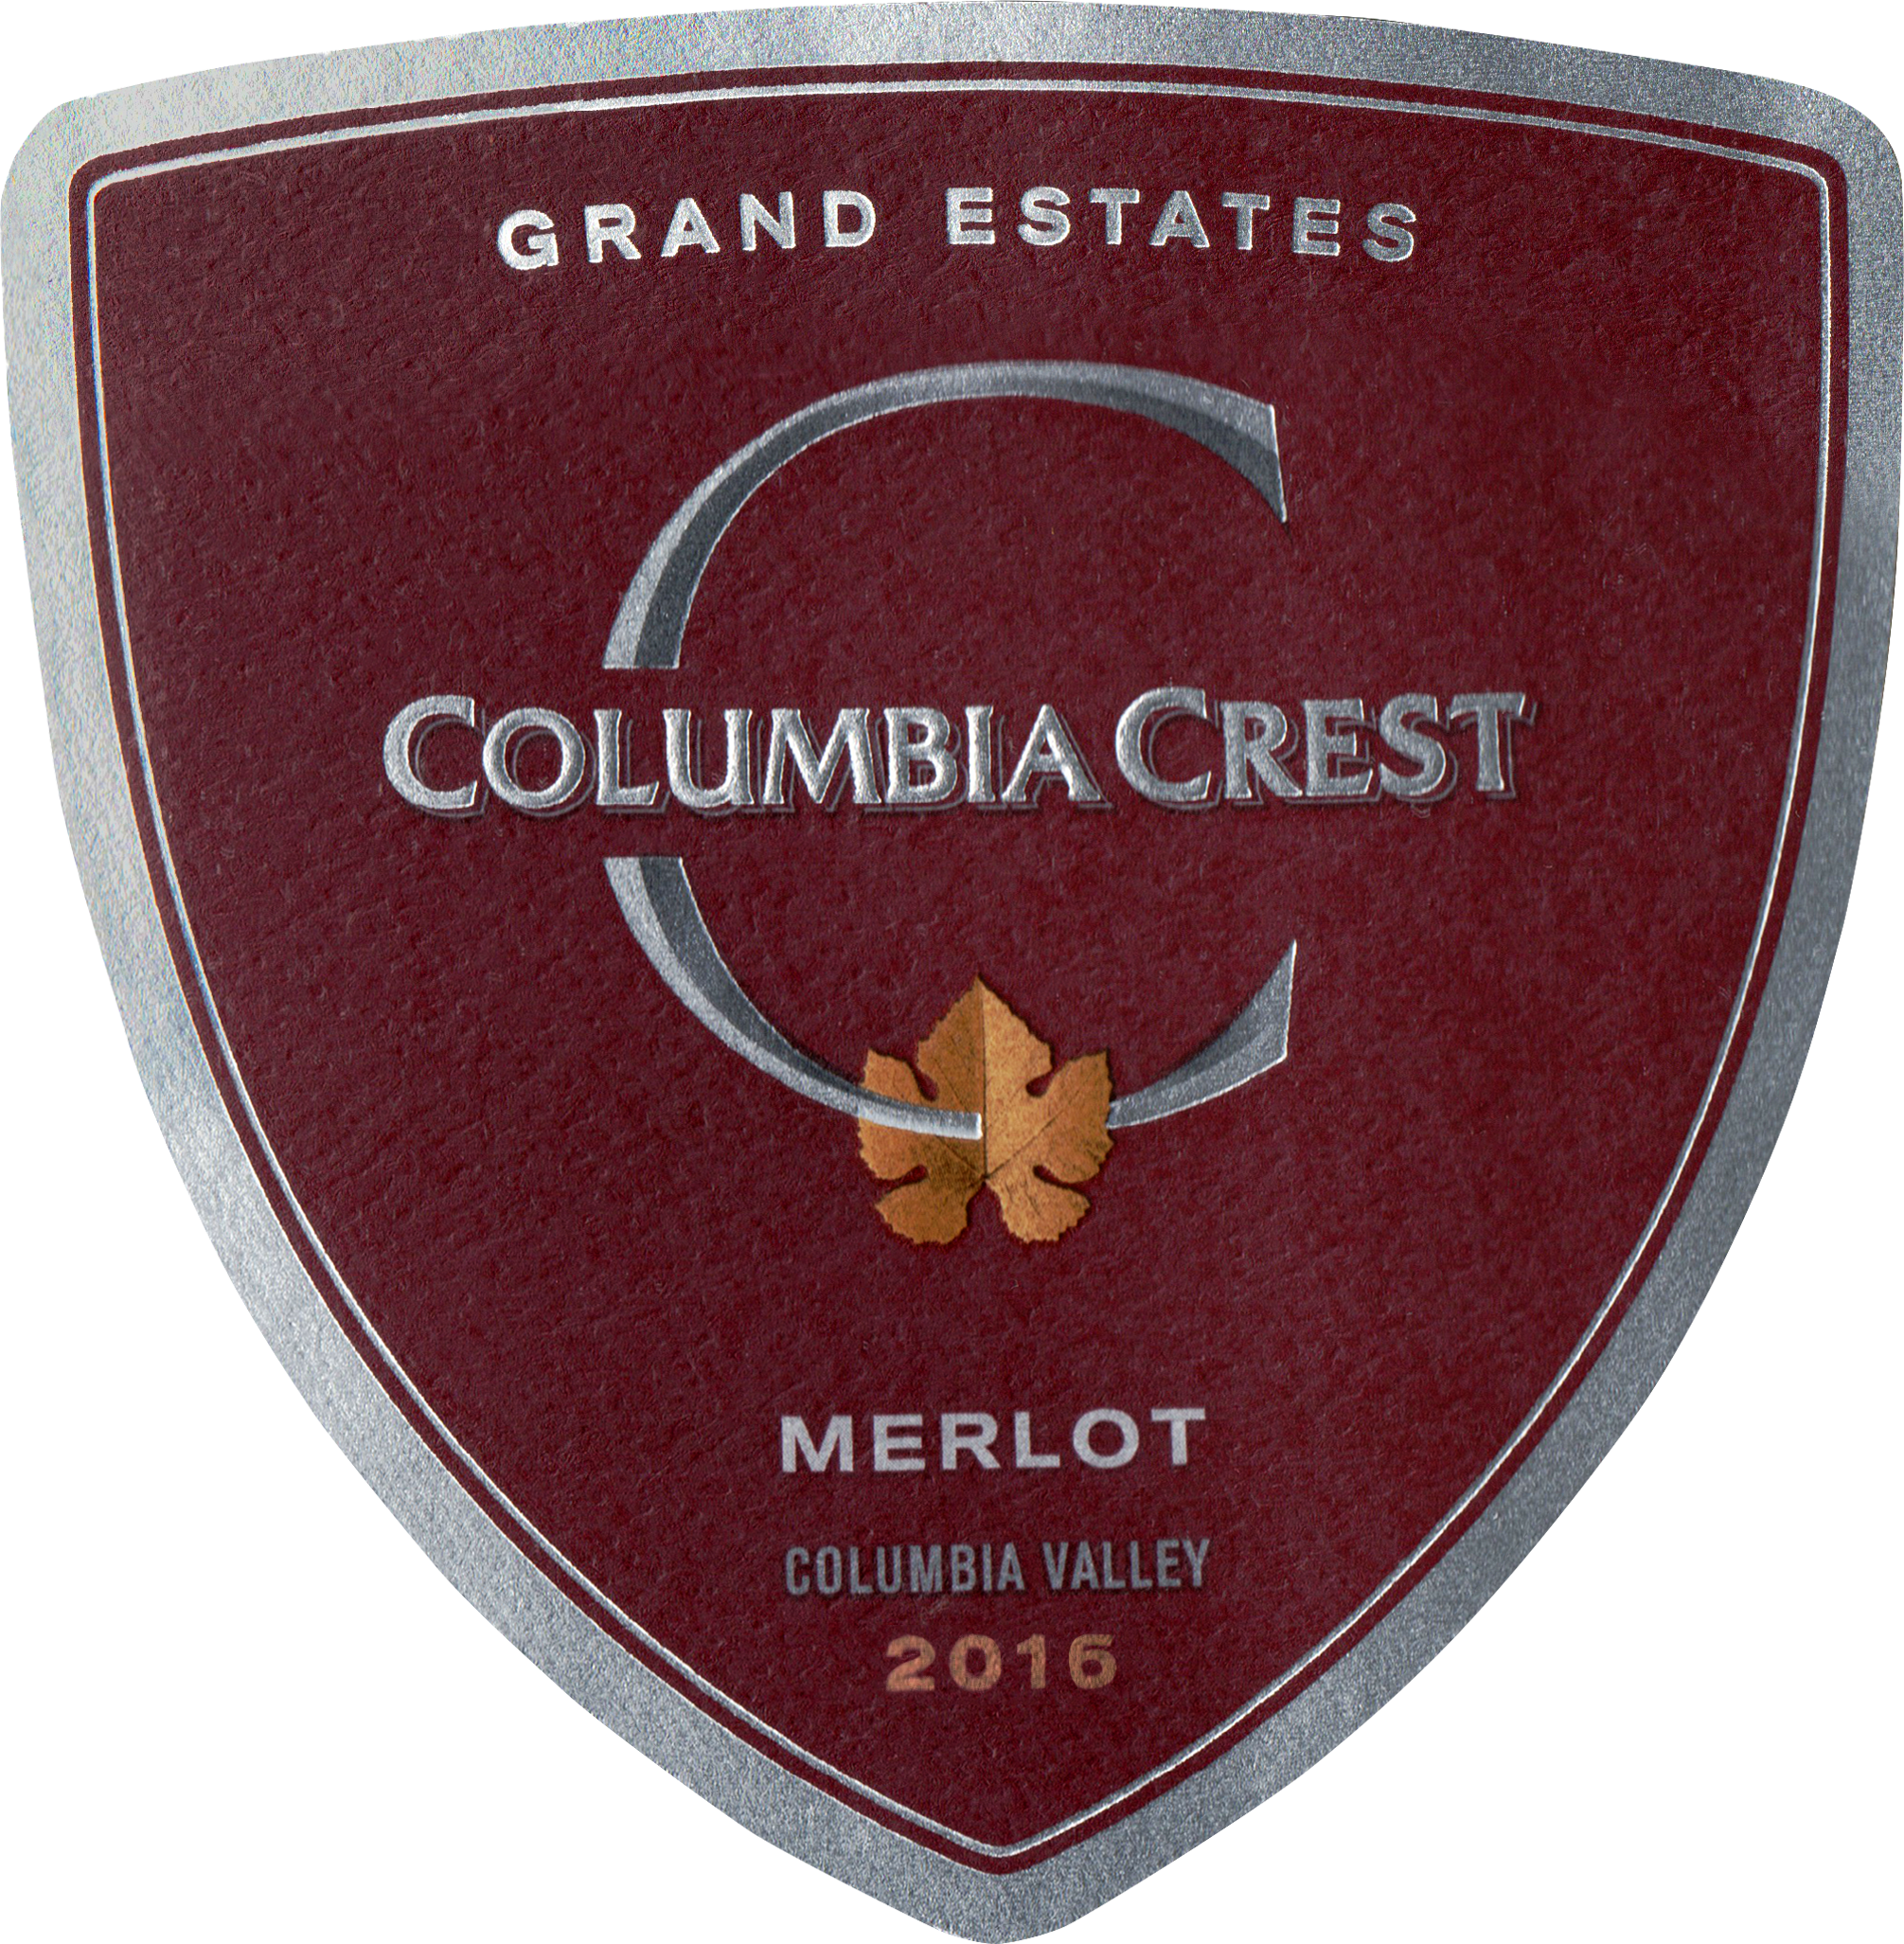 Columbia Crest Grand Estate Merlot 2016